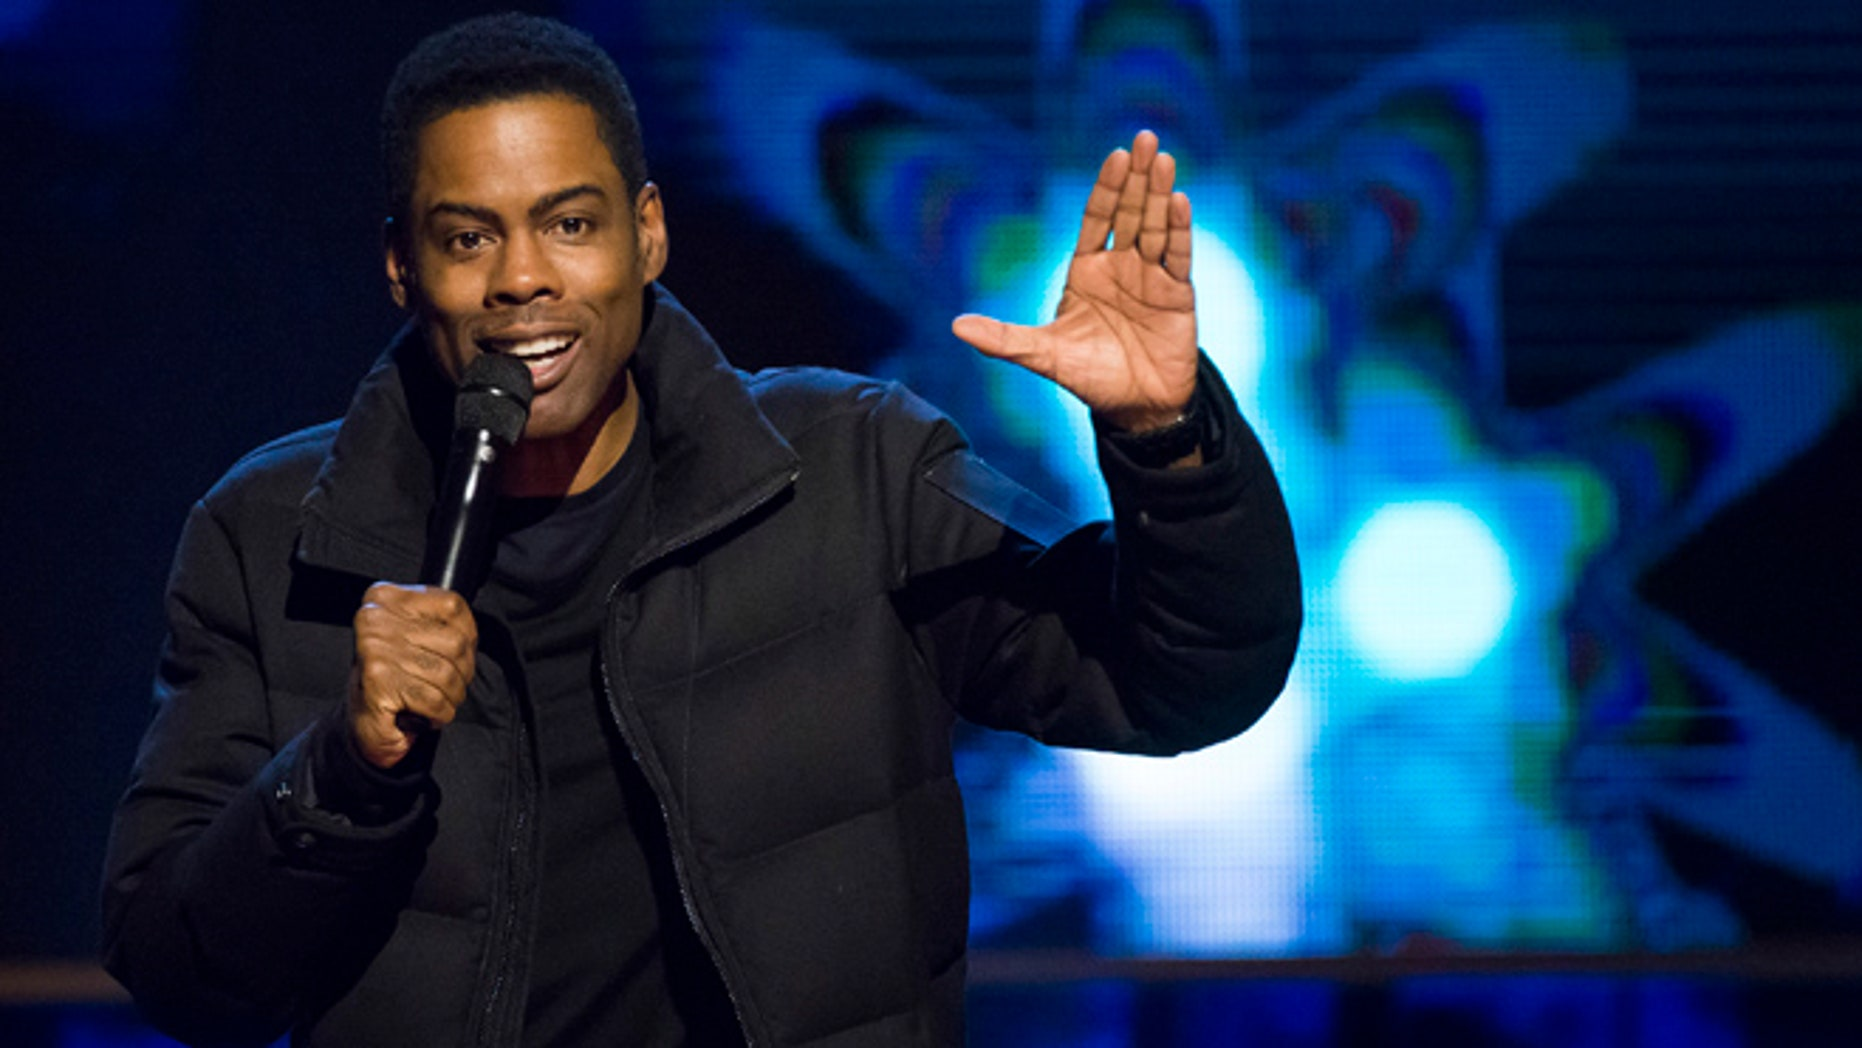 """Feb. 28, 2015. Chris Rock appears onstage at Comedy Central's """"Night of Too Many Stars: America Comes Together for Autism Programs"""" in New York."""